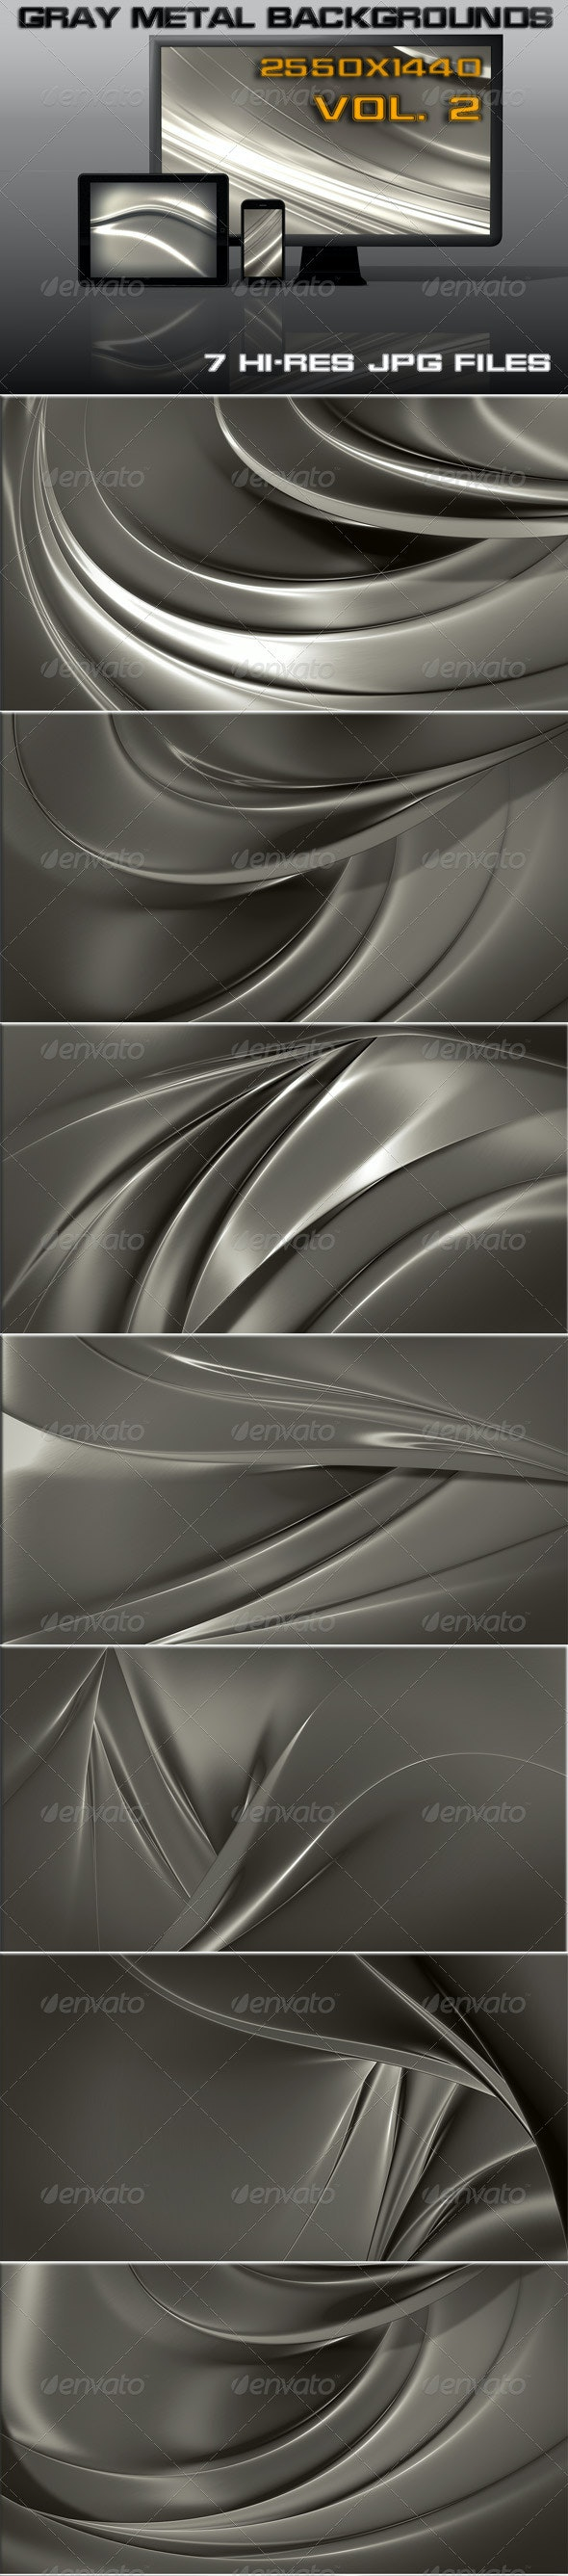 Gray Metal Web Background  - 3D Backgrounds